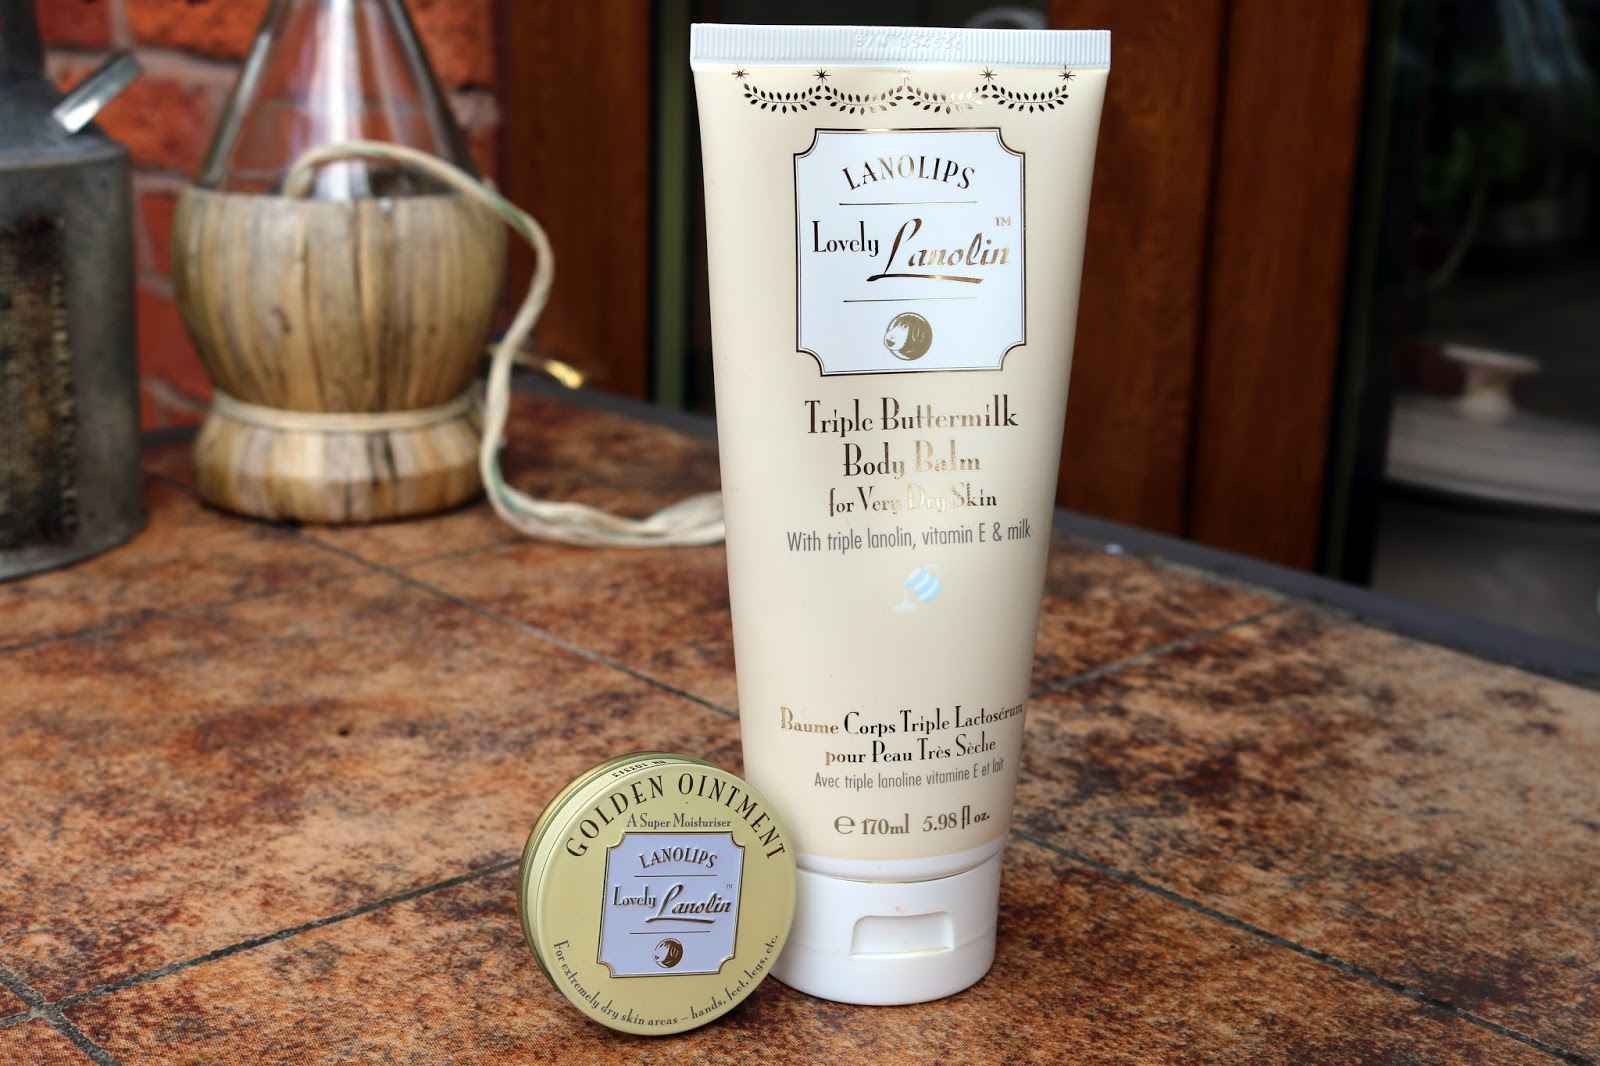 Lanolips bodycare